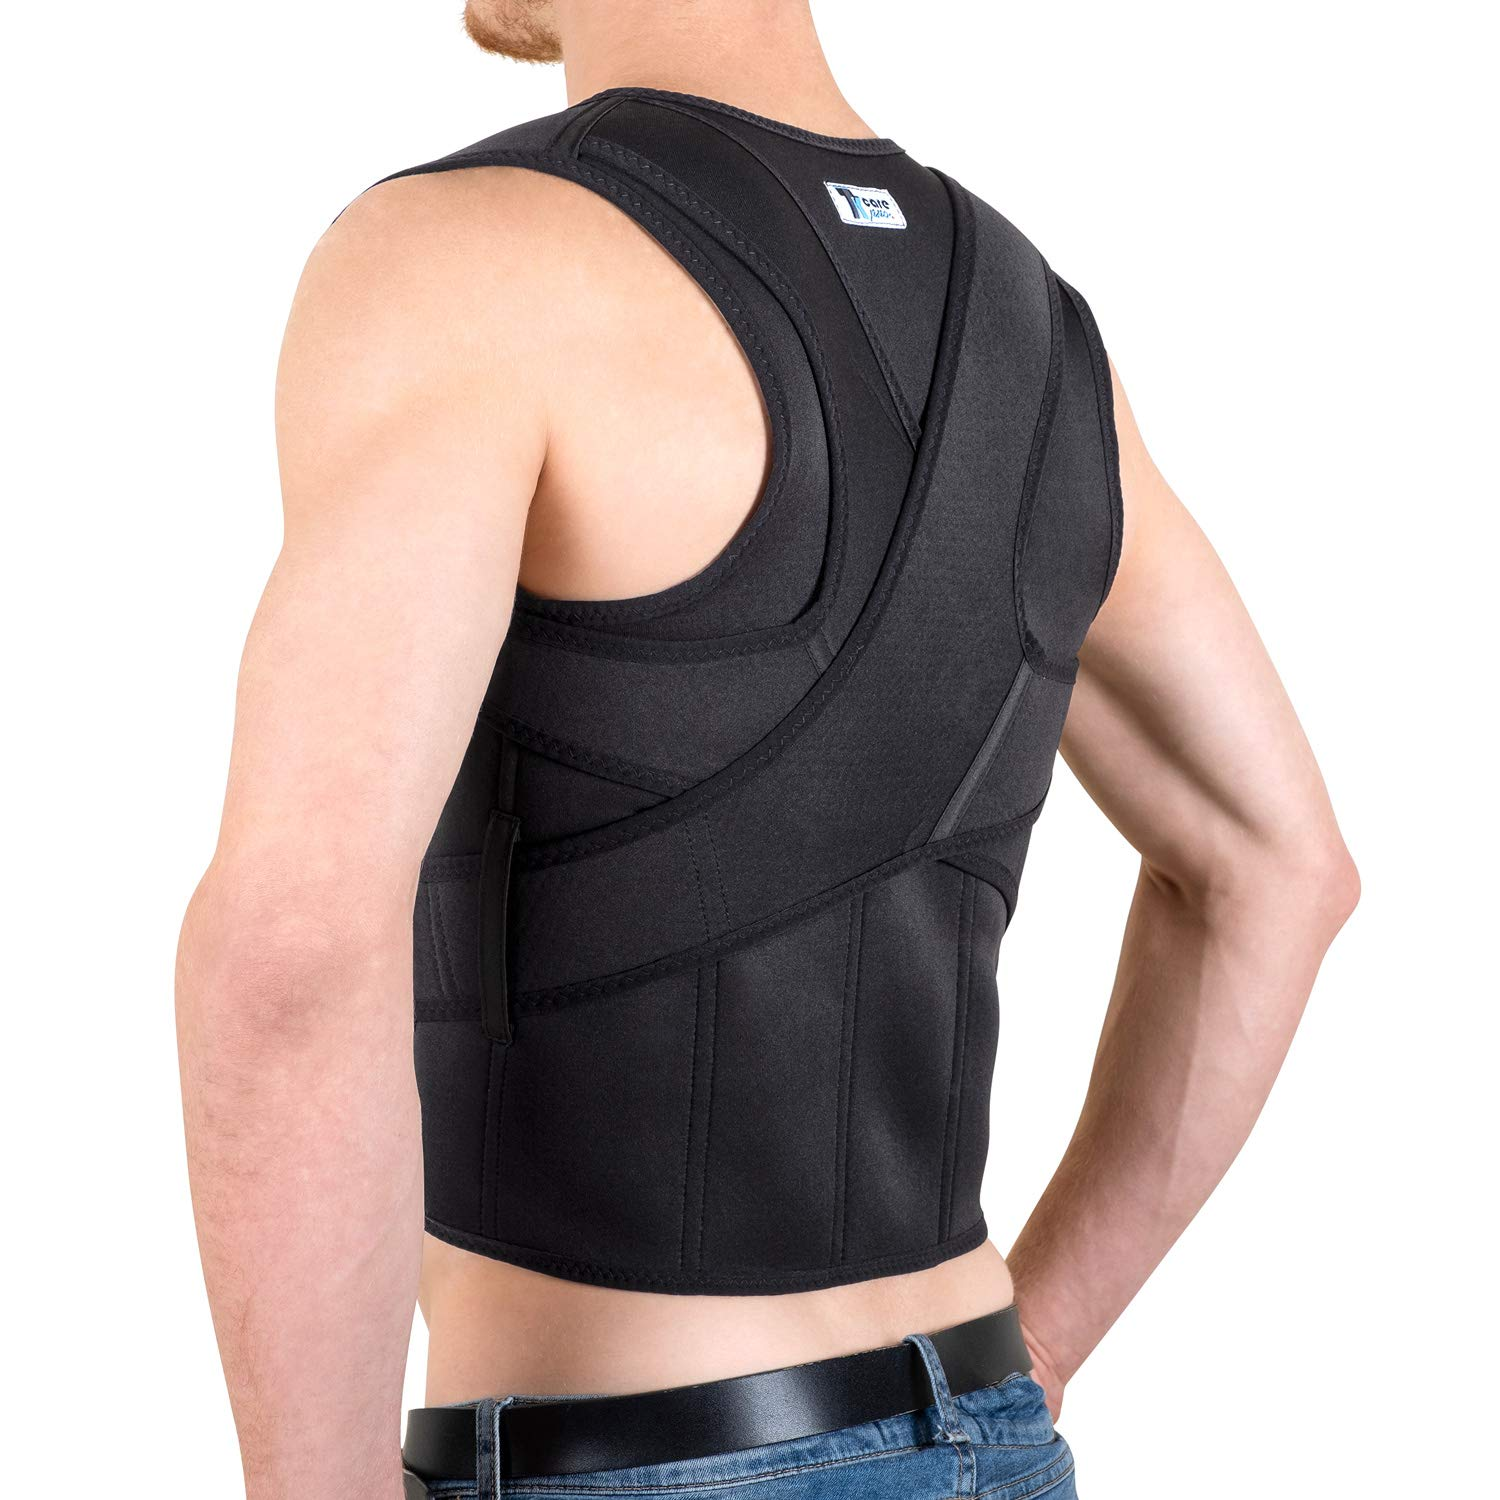 The Ultimate Back Brace Posture Corrector- Best Fully Adjustable Support Brace - Improves Posture and Provides Lumbar Support - for Lower and Upper Back Pain - Men and Women (S (24'' - 28'' Waist))